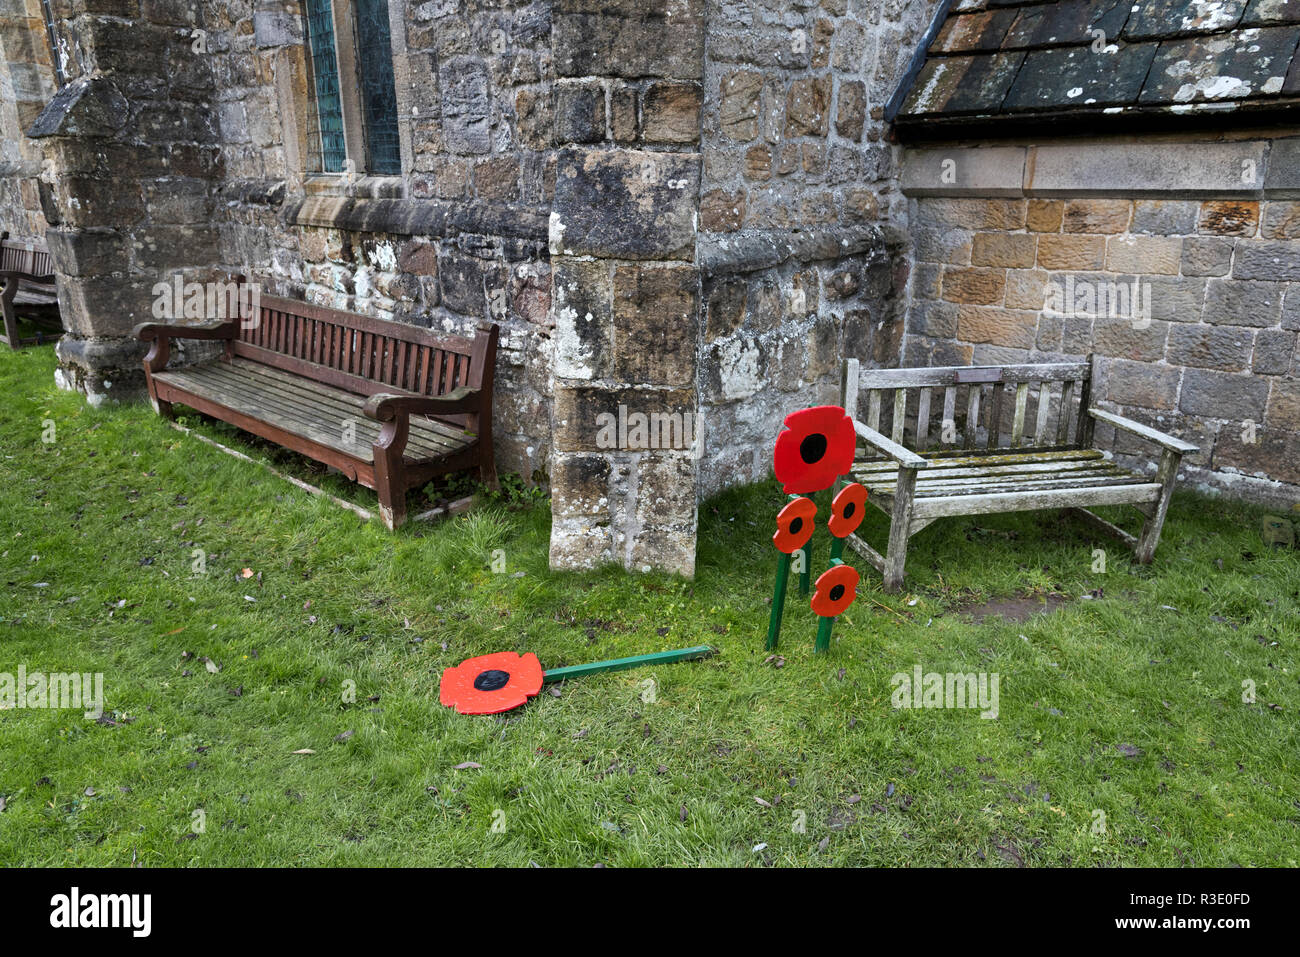 Remembrance Day poppies at St Michael and All Angels Church, Linton, North Yorkshire, UK - Stock Image